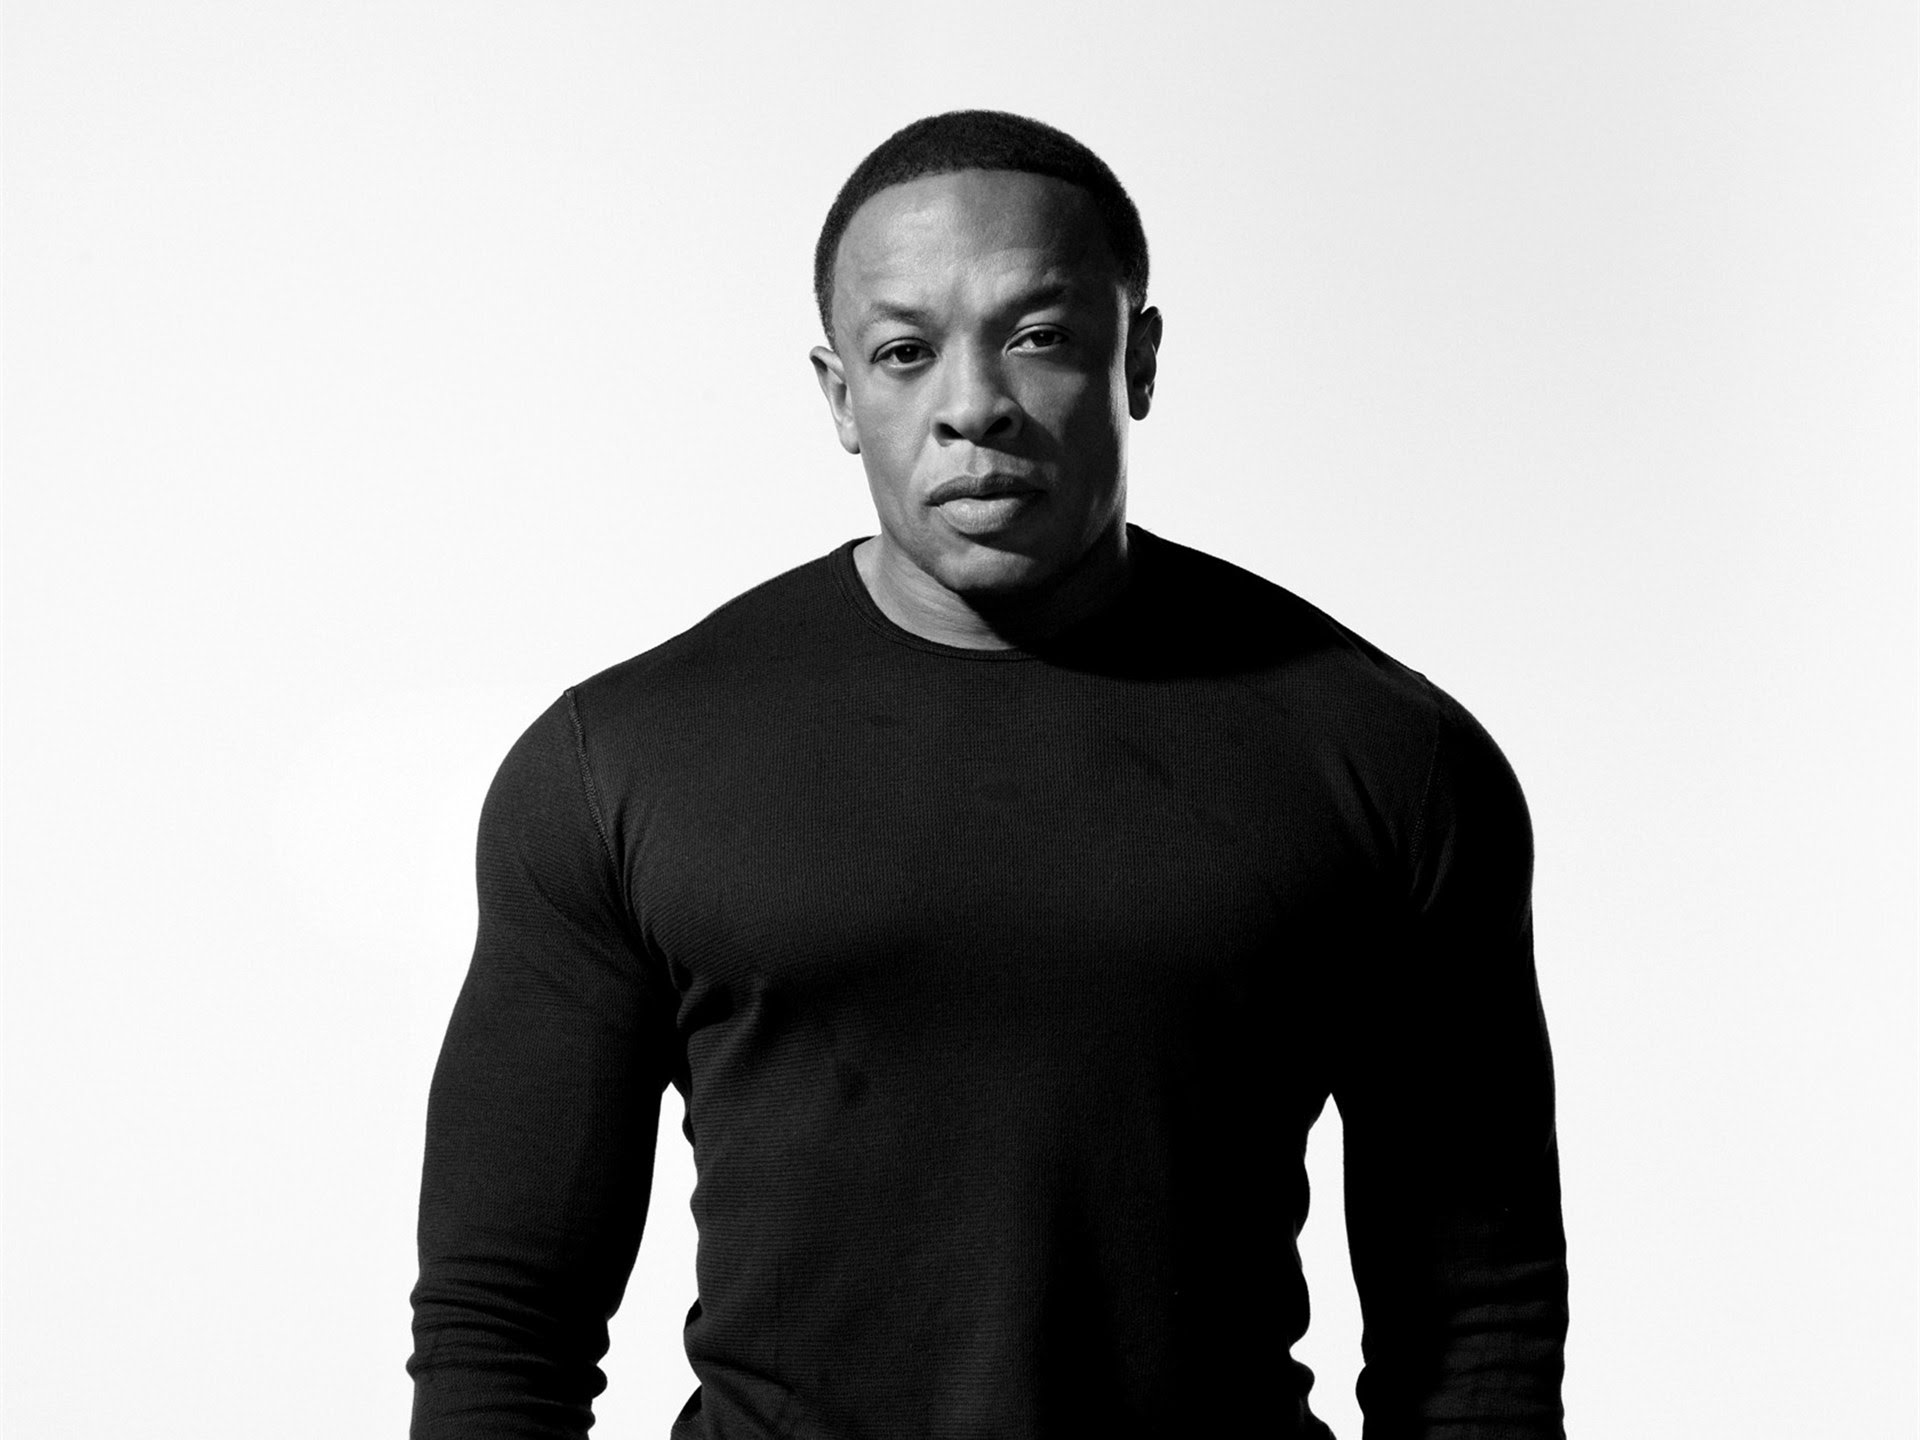 Dr. Dre to Represent LA in City's Efforts to Host 2024 Olympic Games